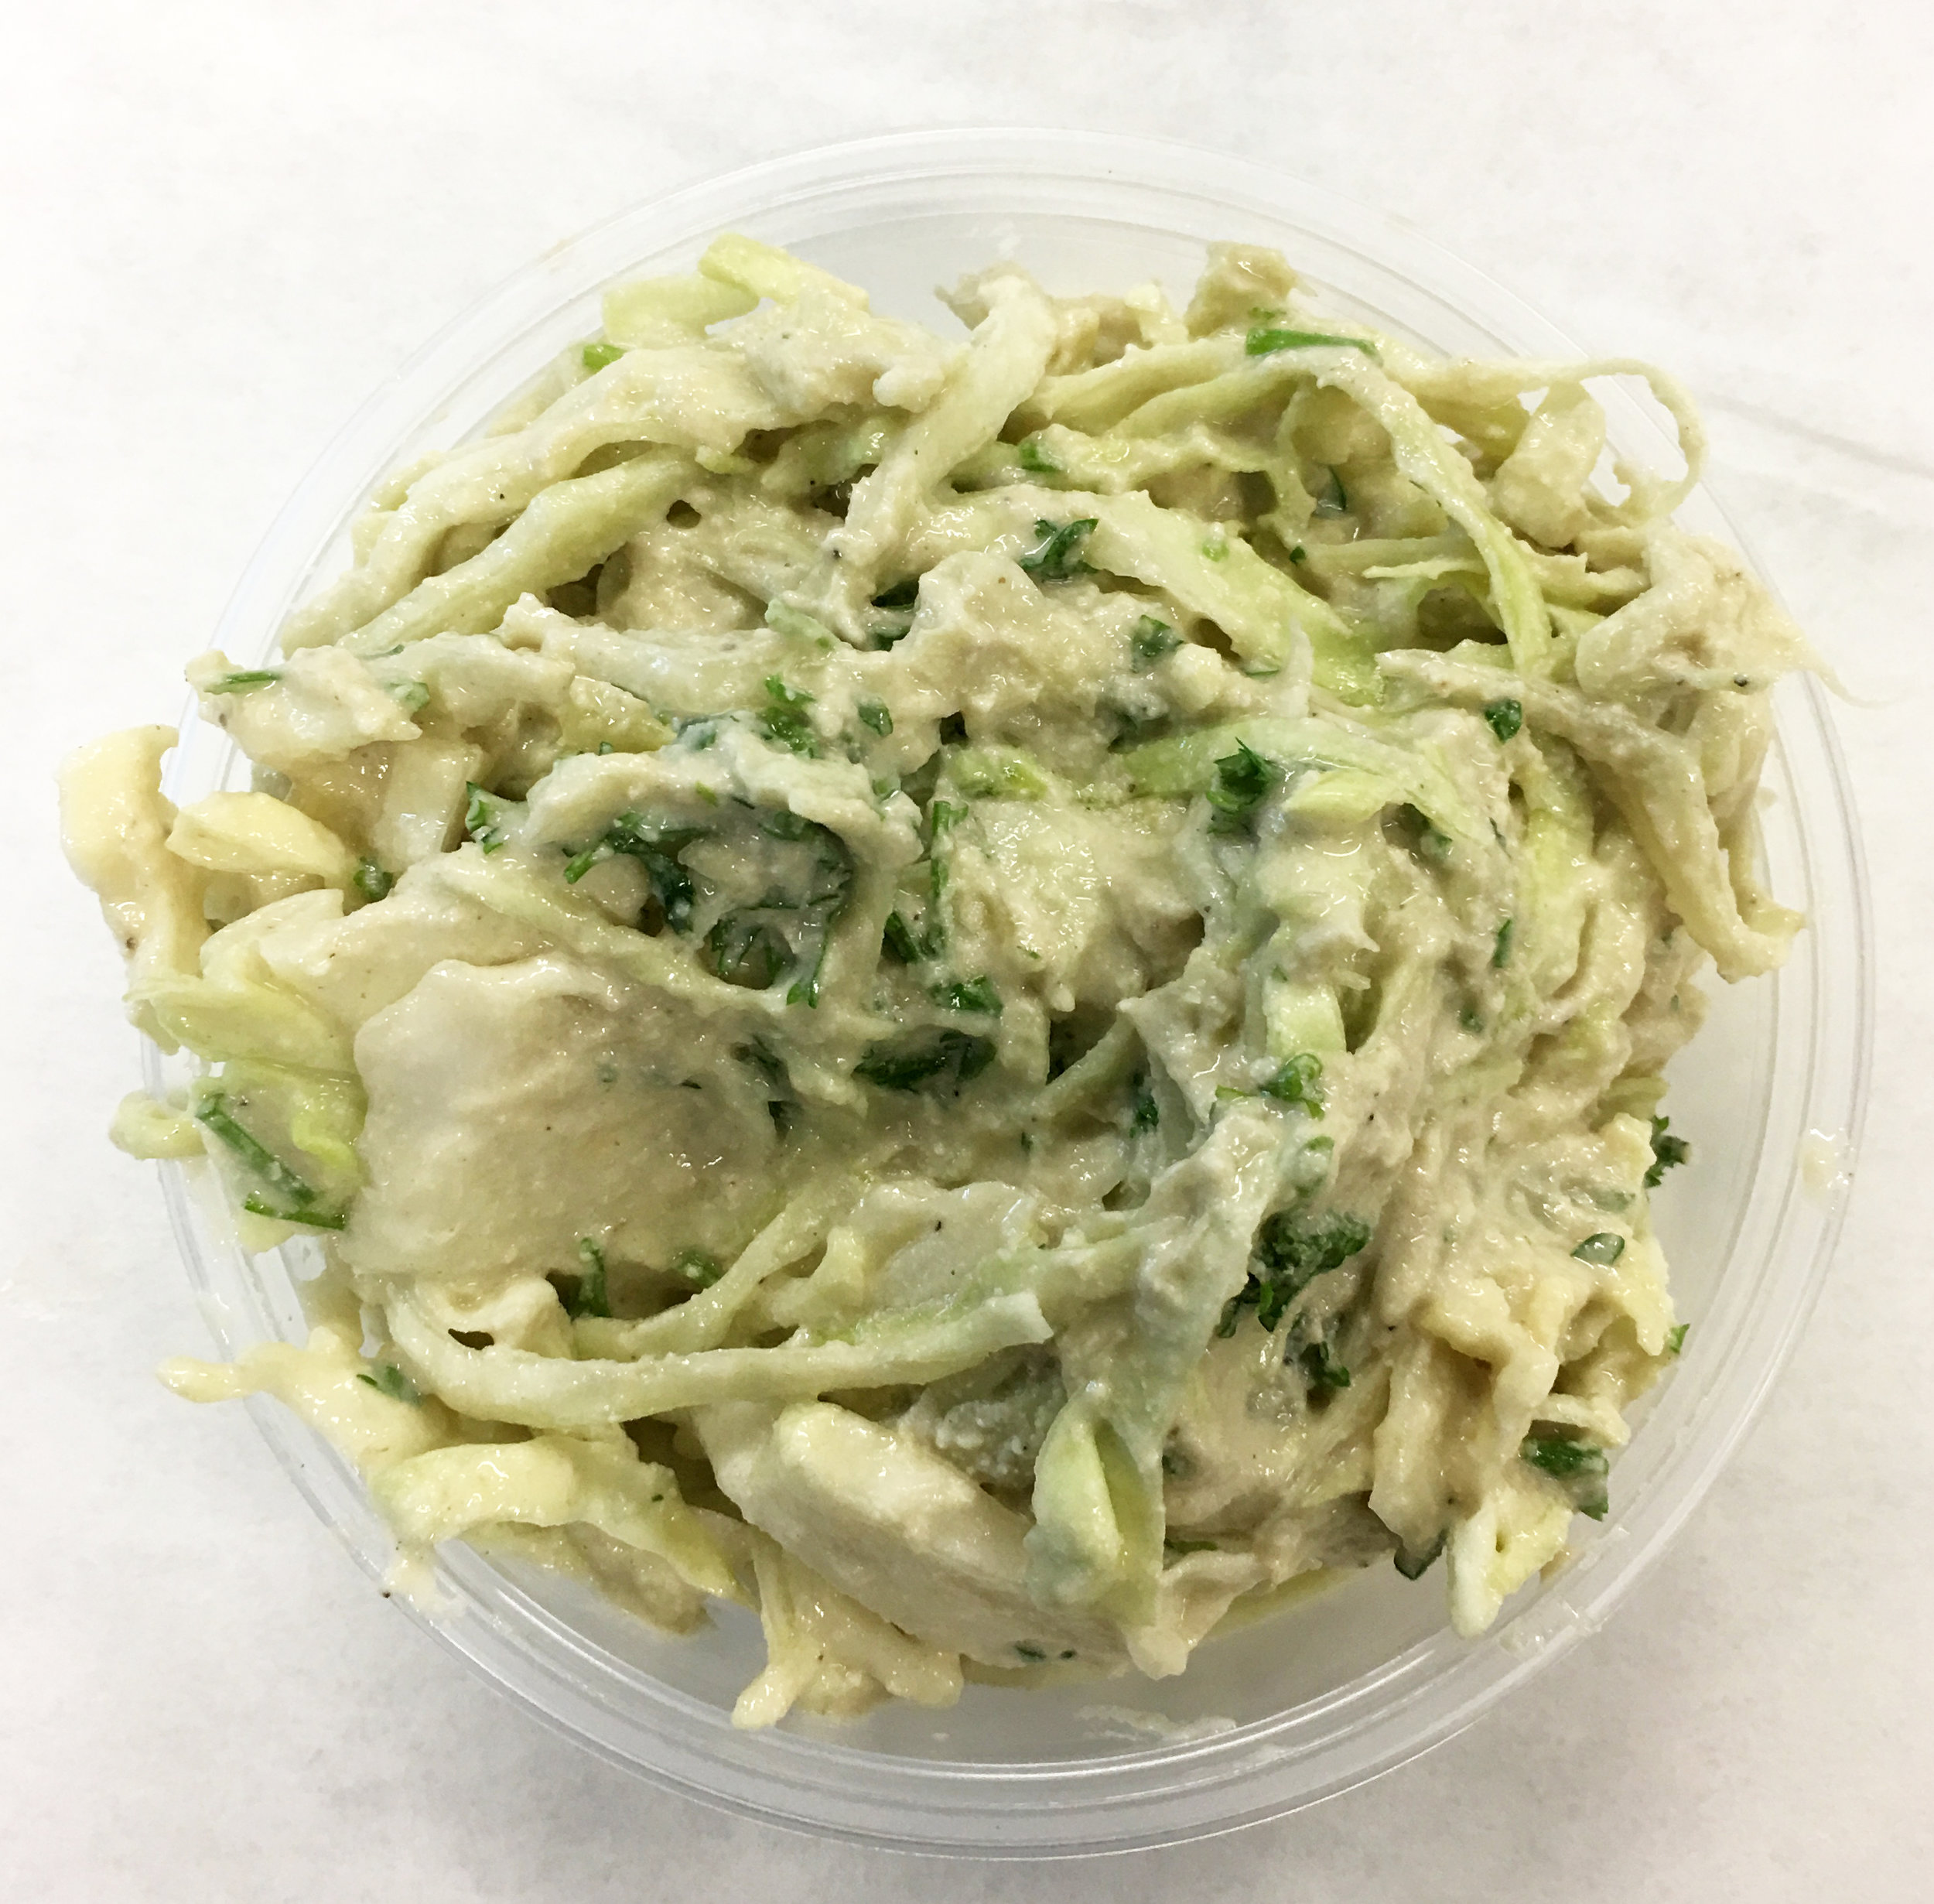 Green cabbage coleslaw with parsley, brown rice syrup, brown rice vinegar and stone ground mustard.